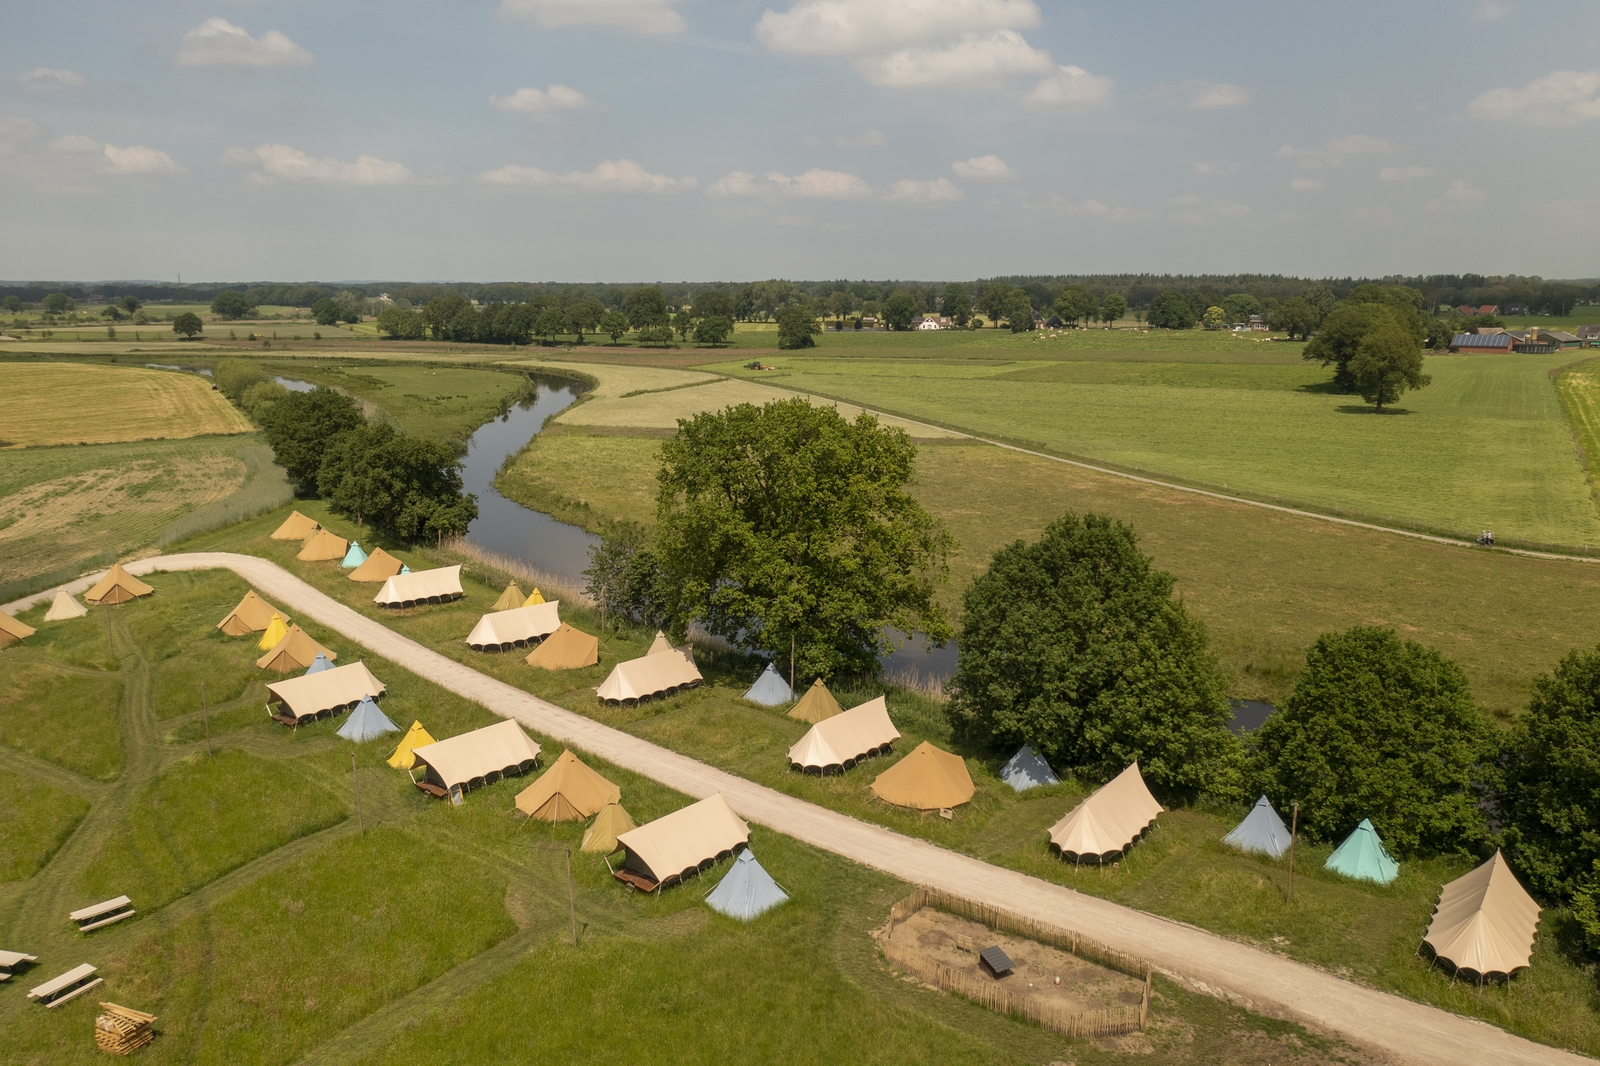 Pop-up glamping: Buurvrouws' Belltentje   2-4 pers.